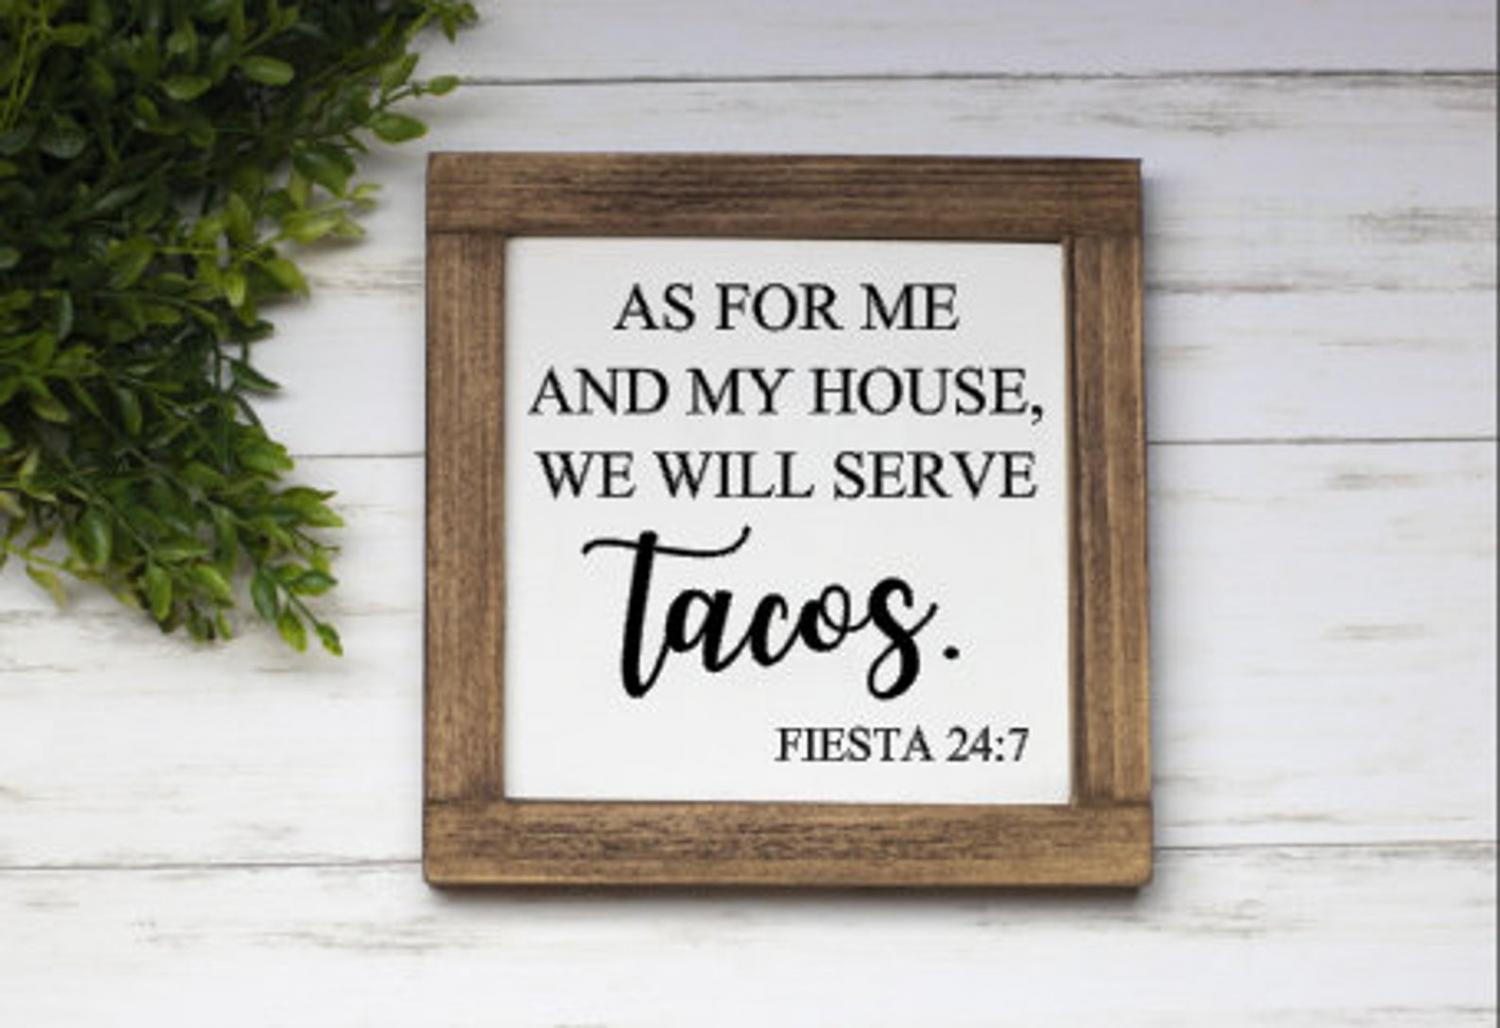 As For Me and My House We Will Serve Tacos - Fiesta 24:7